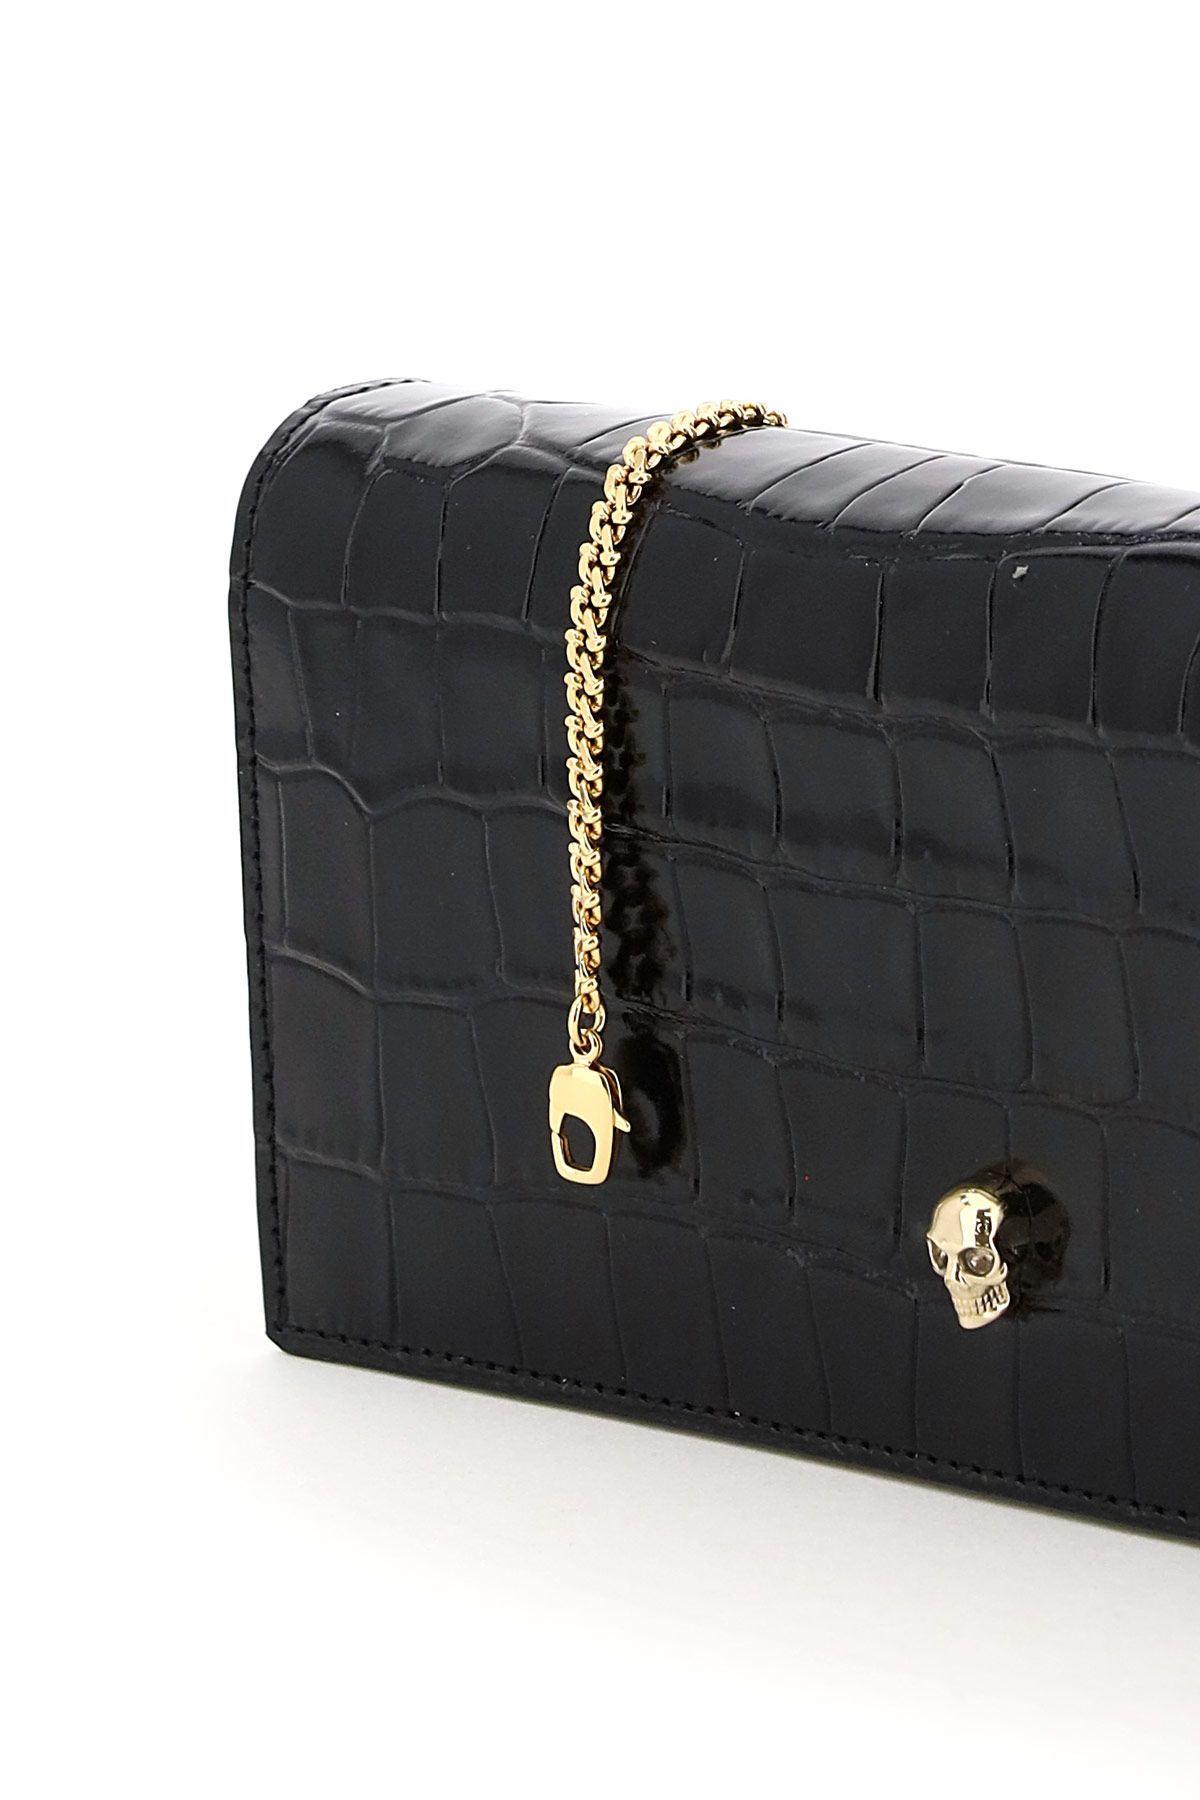 alexander mcqueen bags women leather wallet on chain with skull